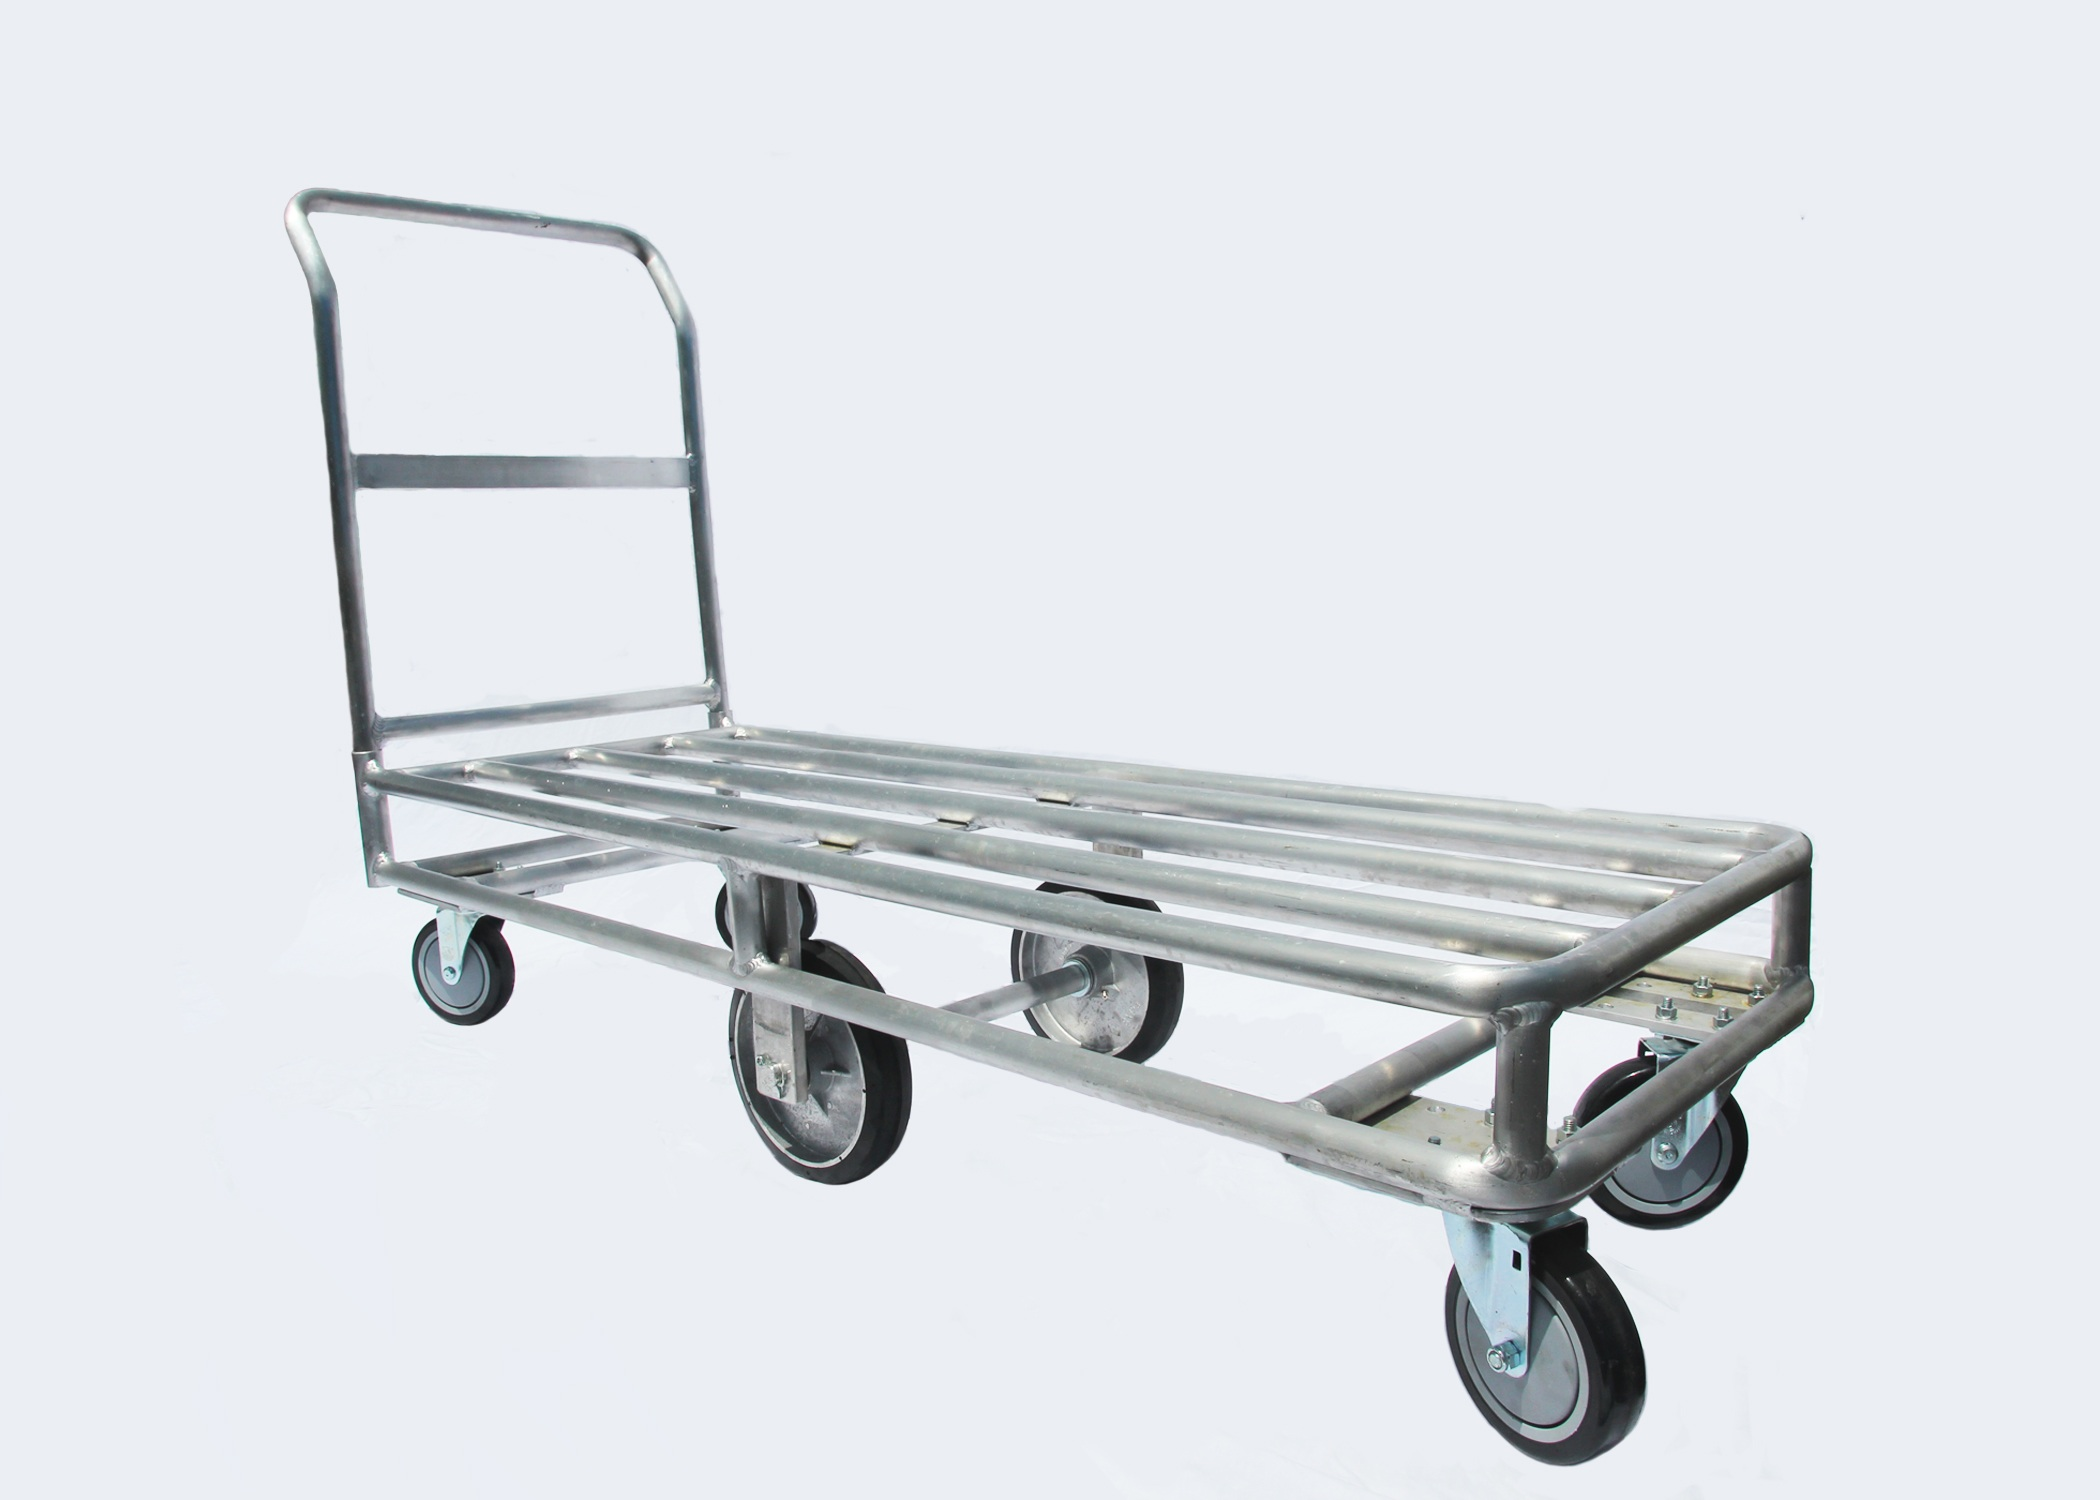 6 Wheel Aluminum Carts Stocking Carts Replacement Casters